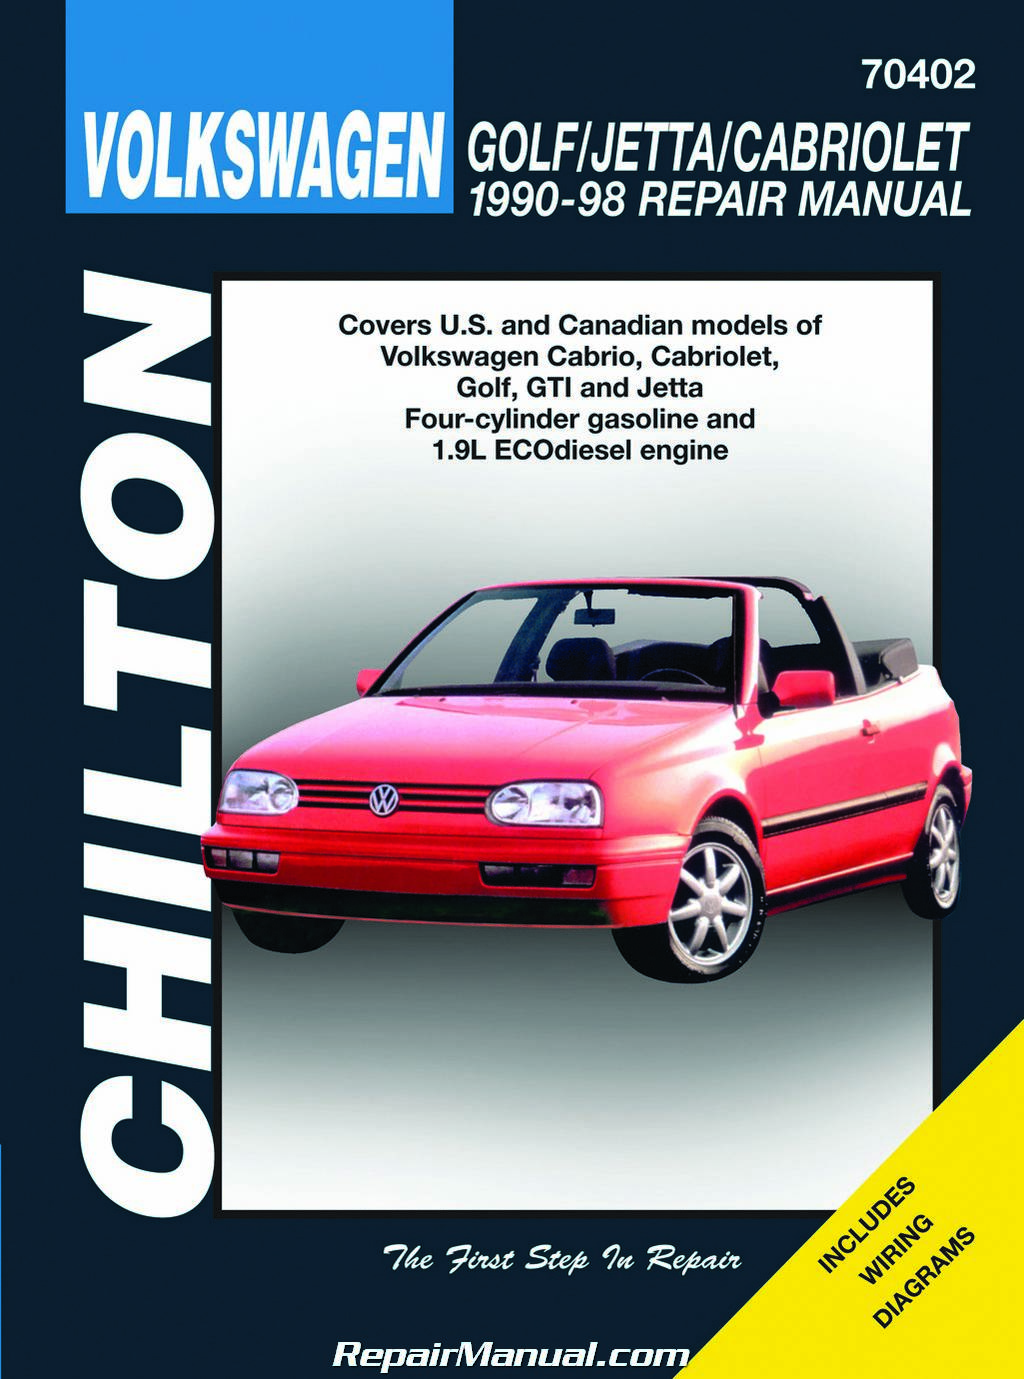 Chilton Volkswagen Cabrio, Cabriolet, Golf, GTI, Jetta 1990-1998 Repair  Manual